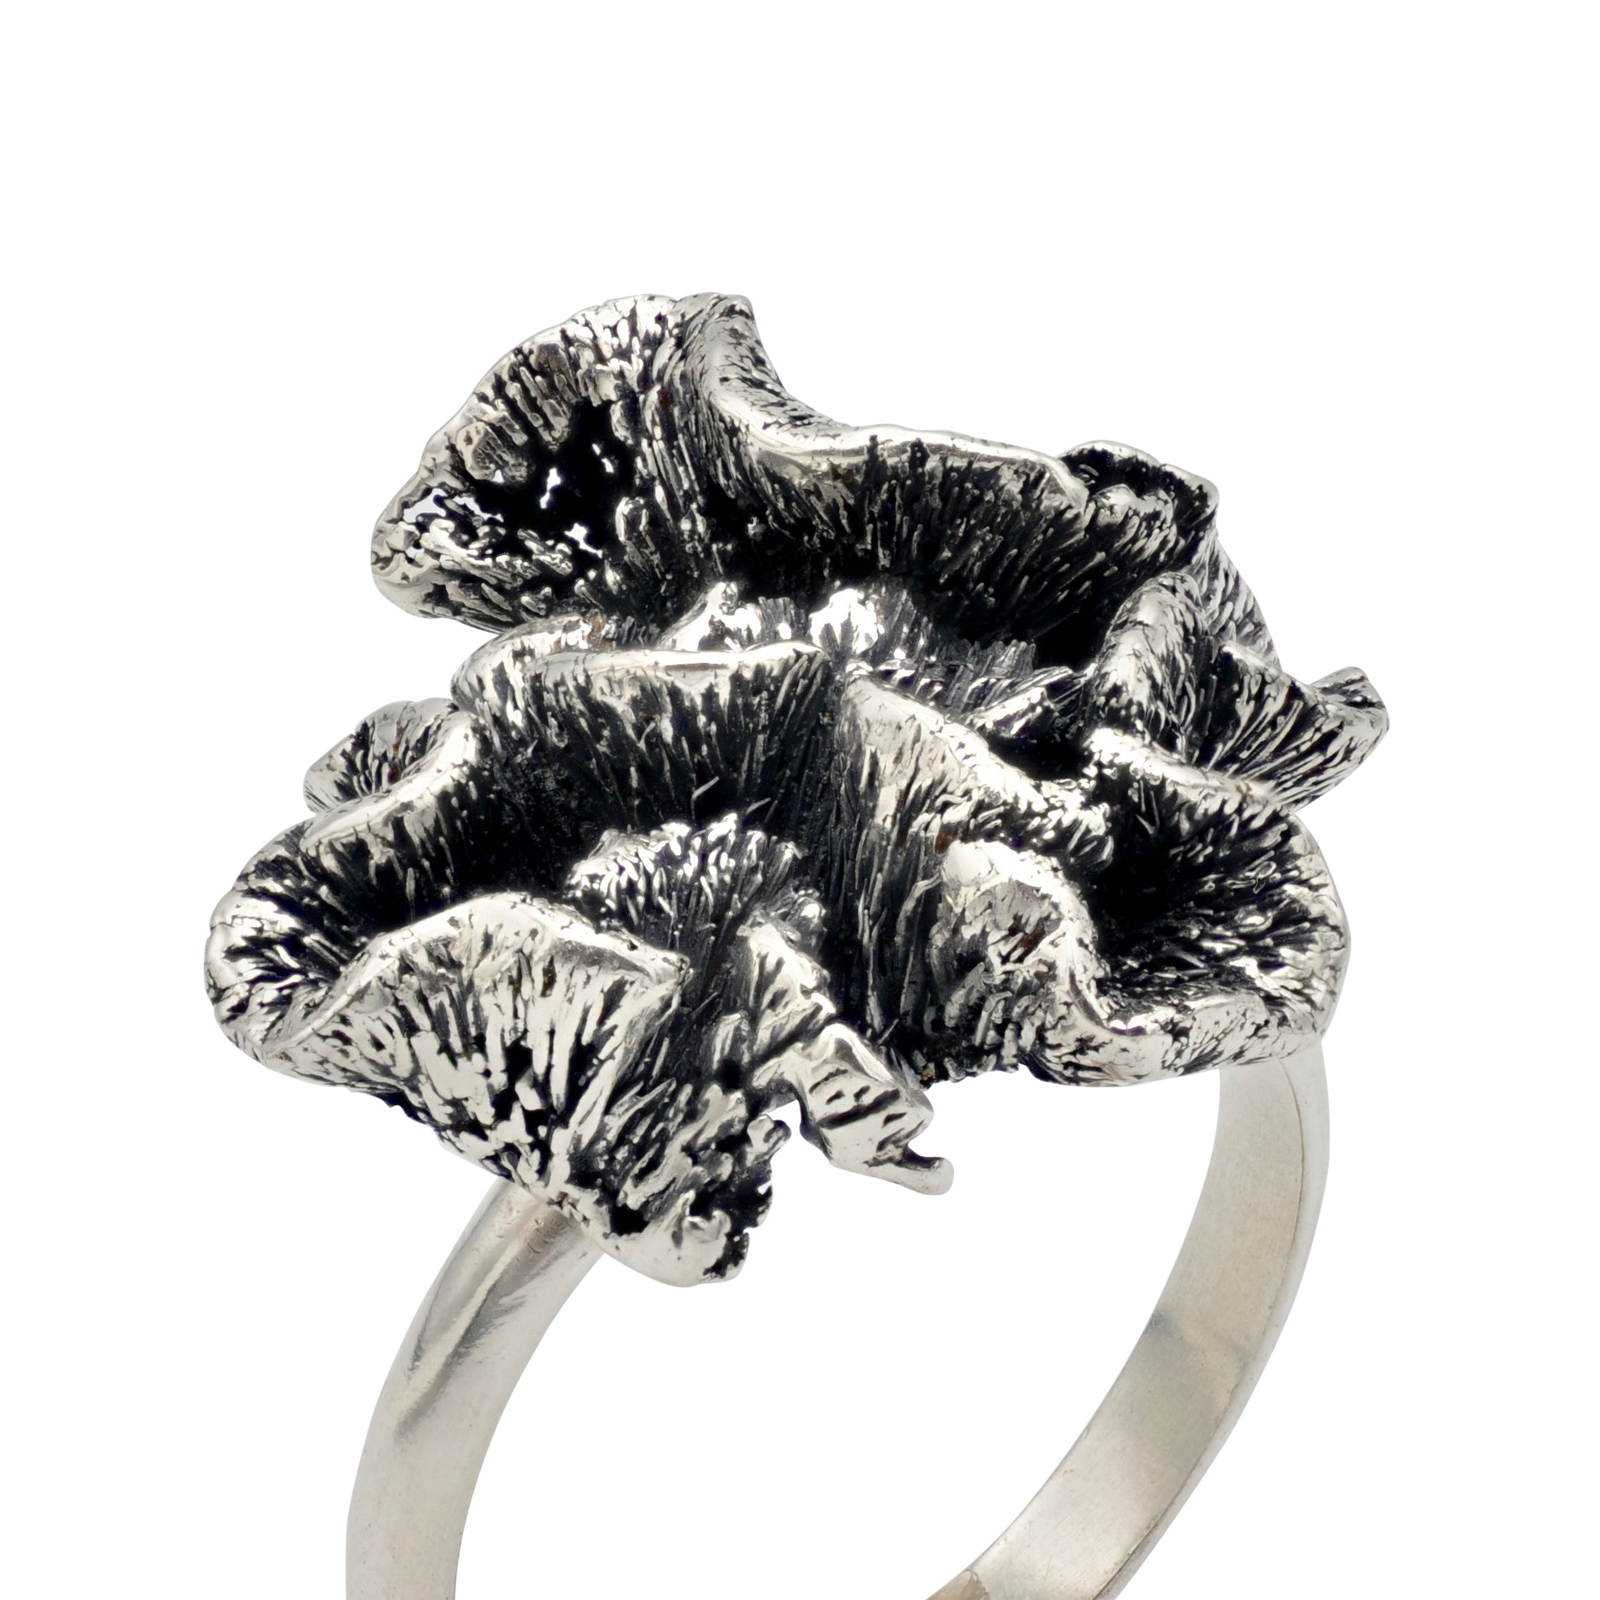 cockscombs-antiqued-sterling-silver-ring-2.jpg